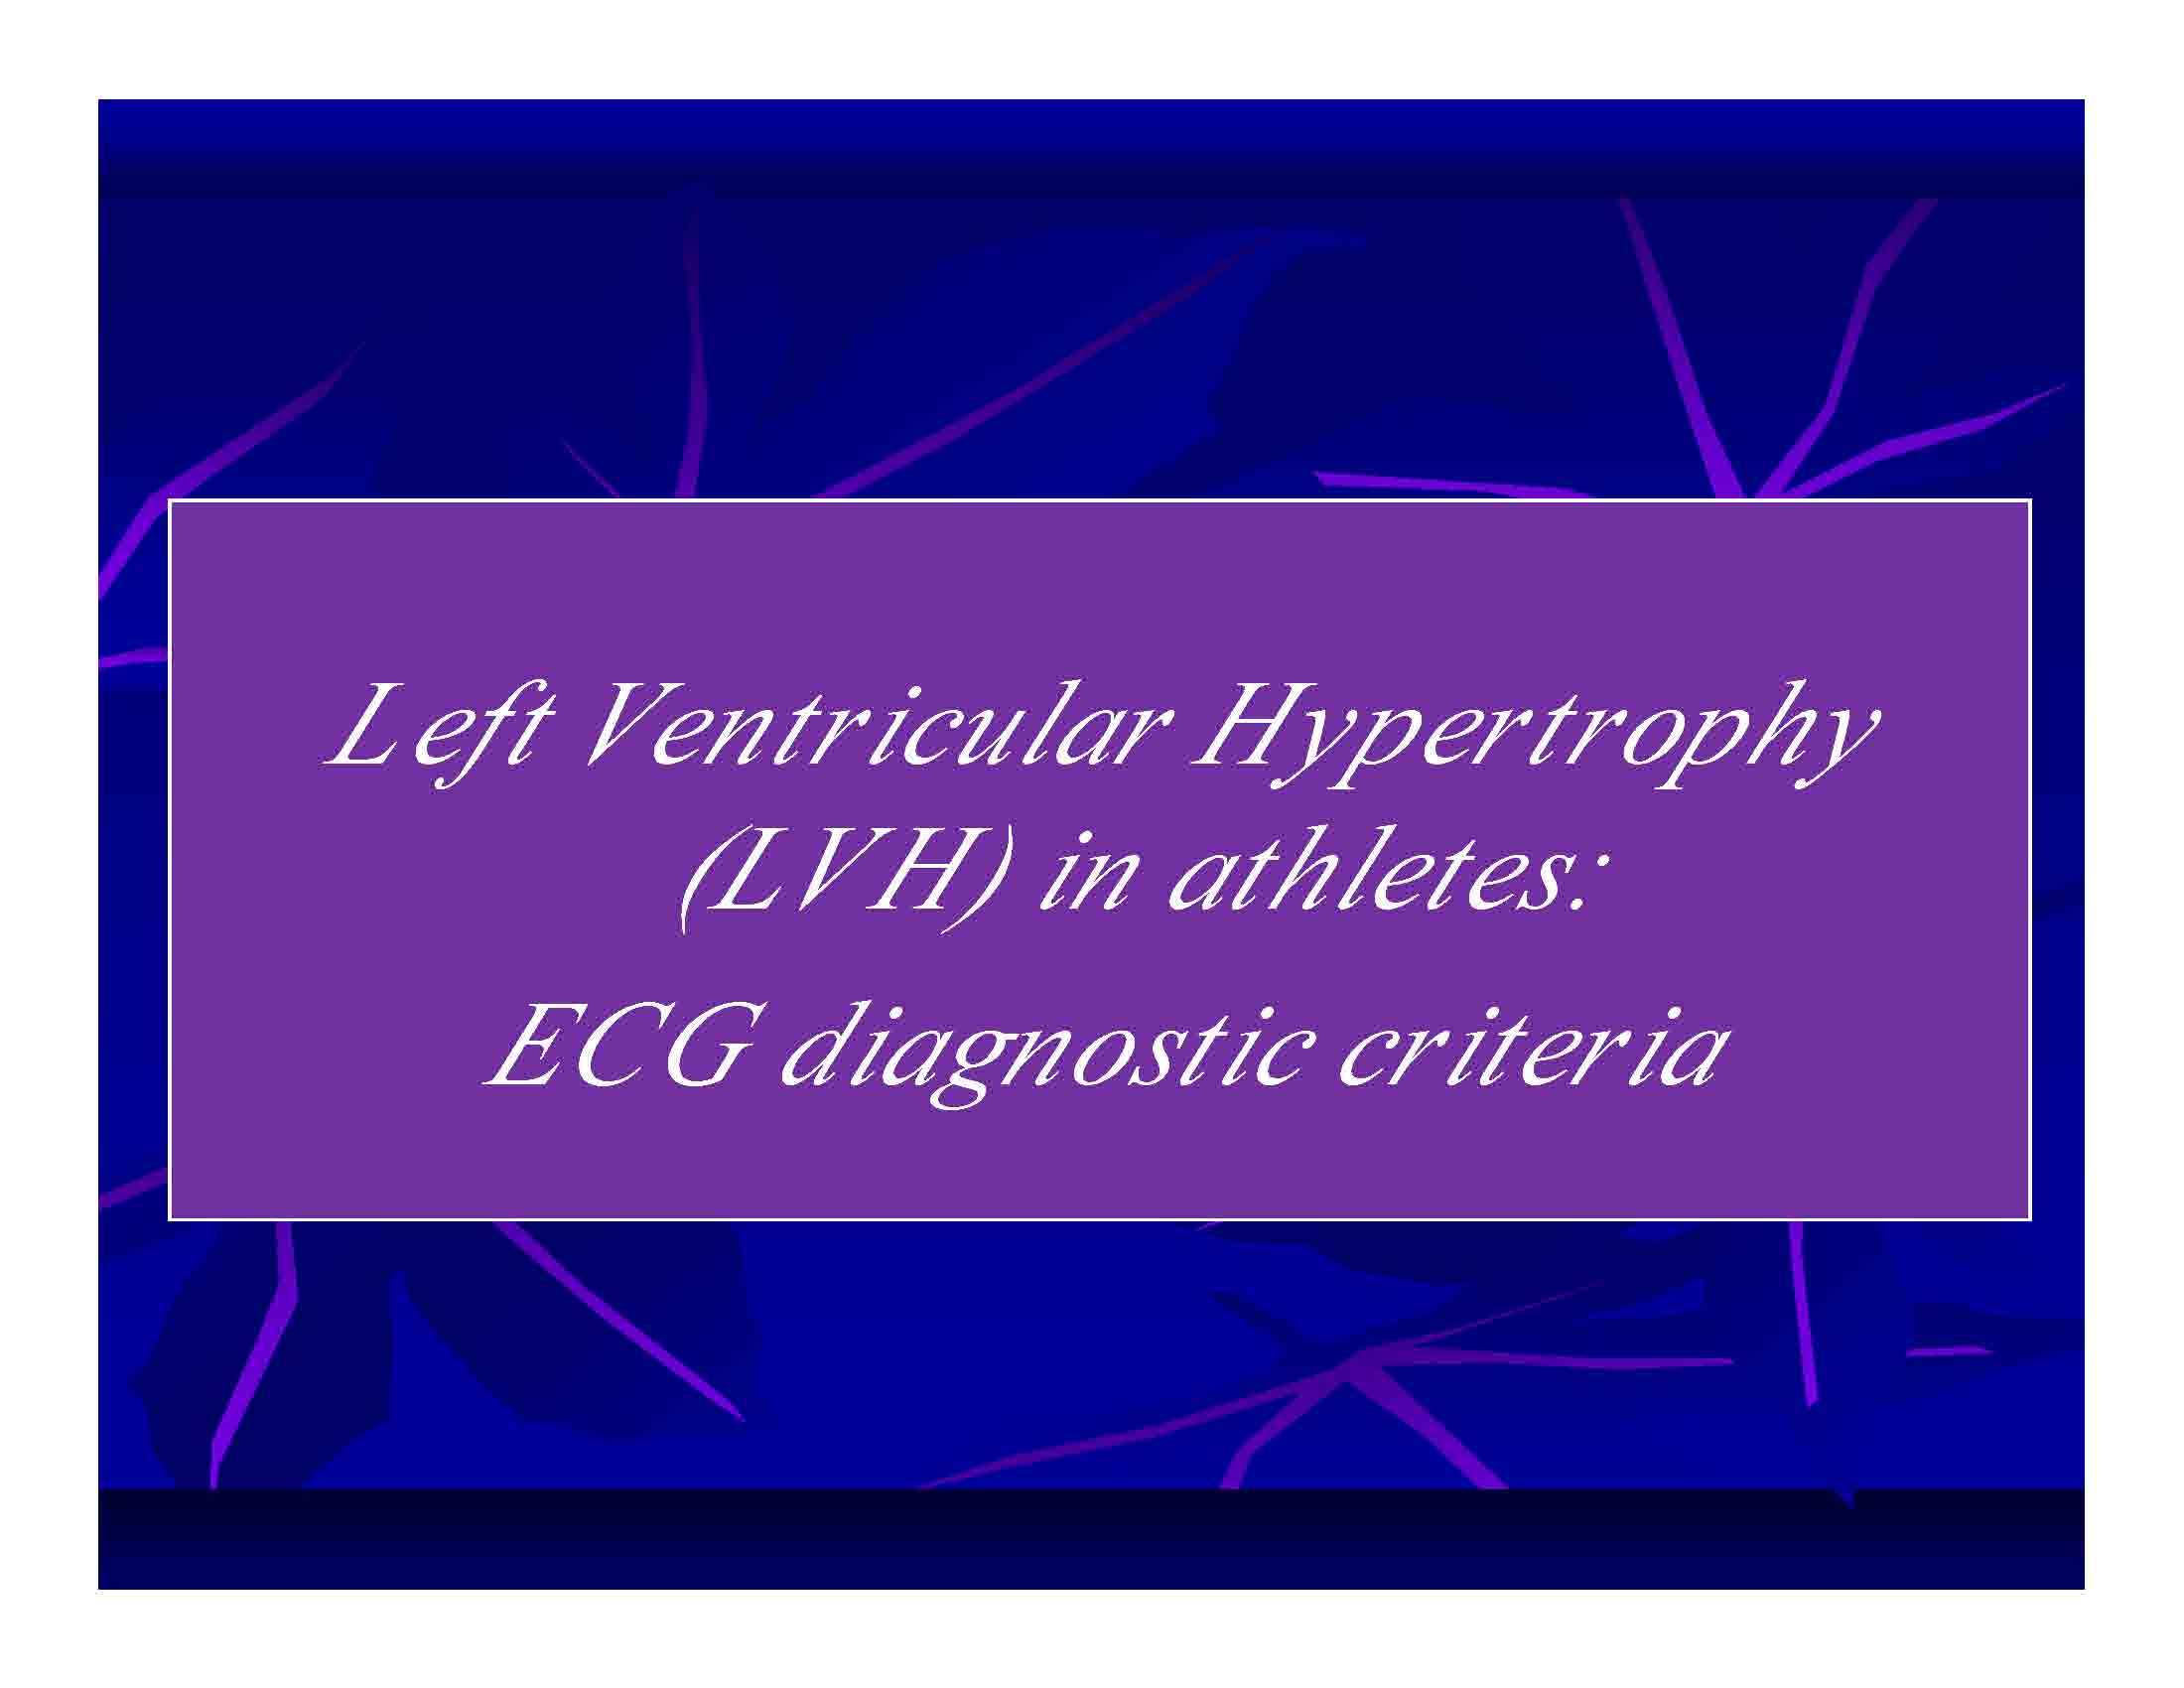 Left Ventricular Hypertrophy (LVH) in athletes